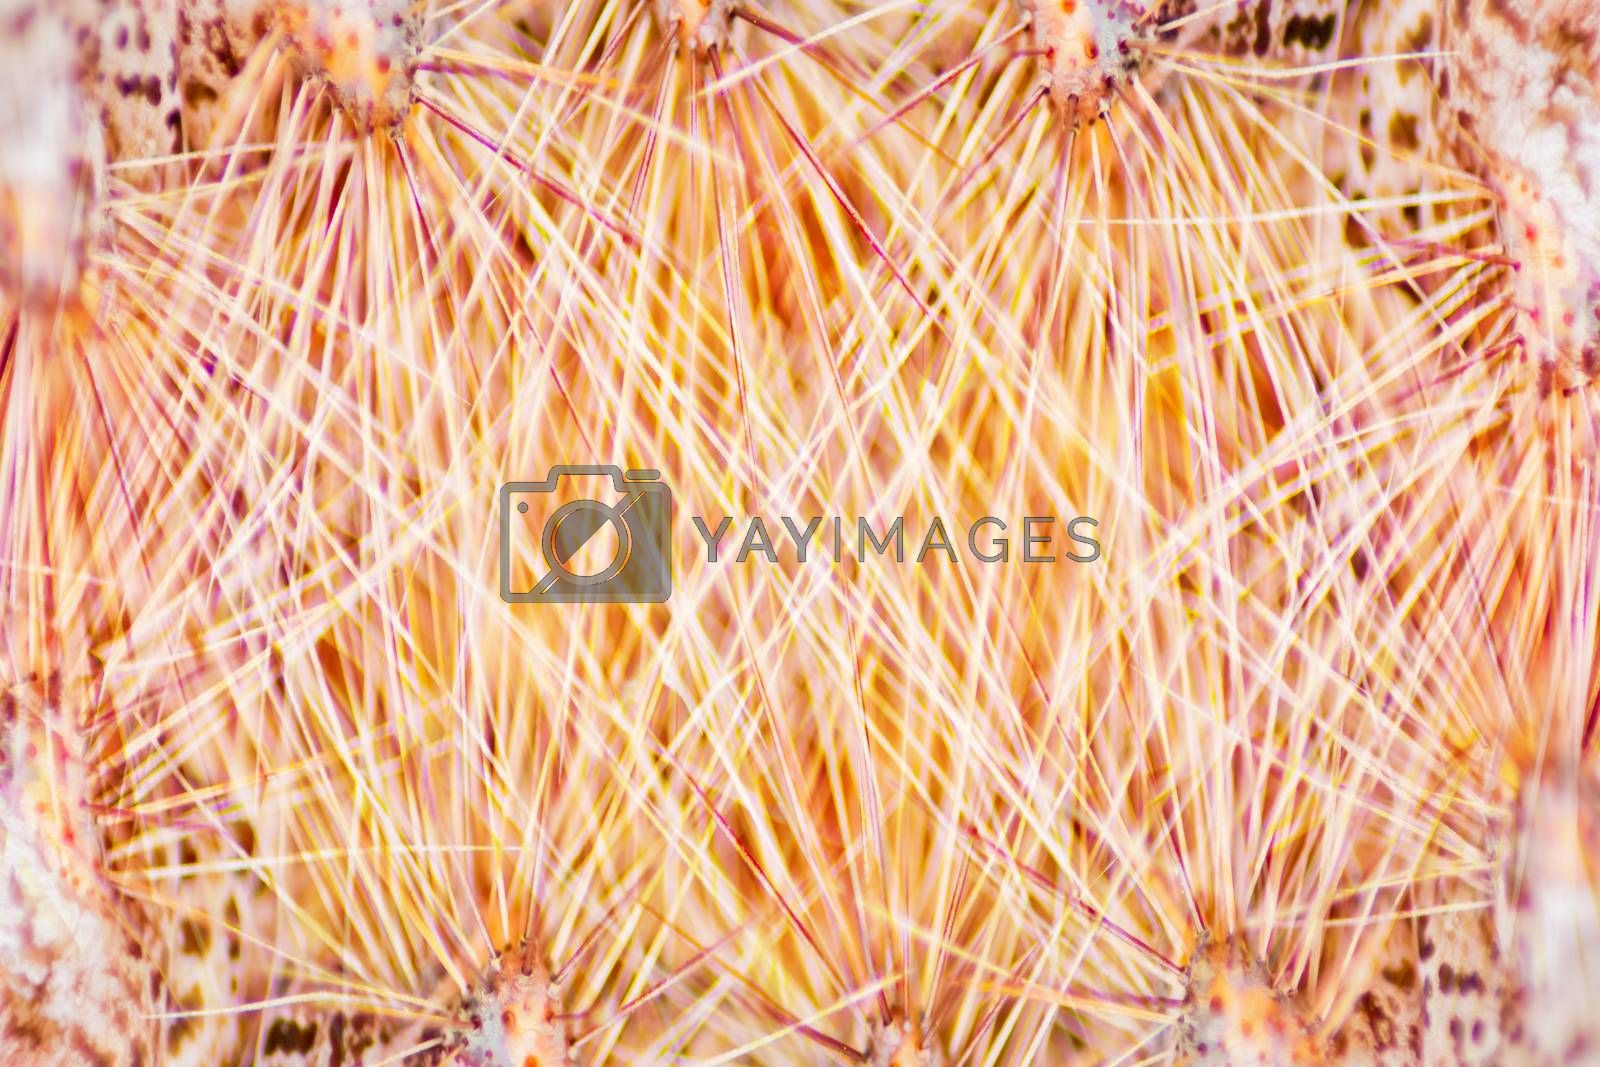 Macro of insect hair and thorns gold for the background is out of focus blur